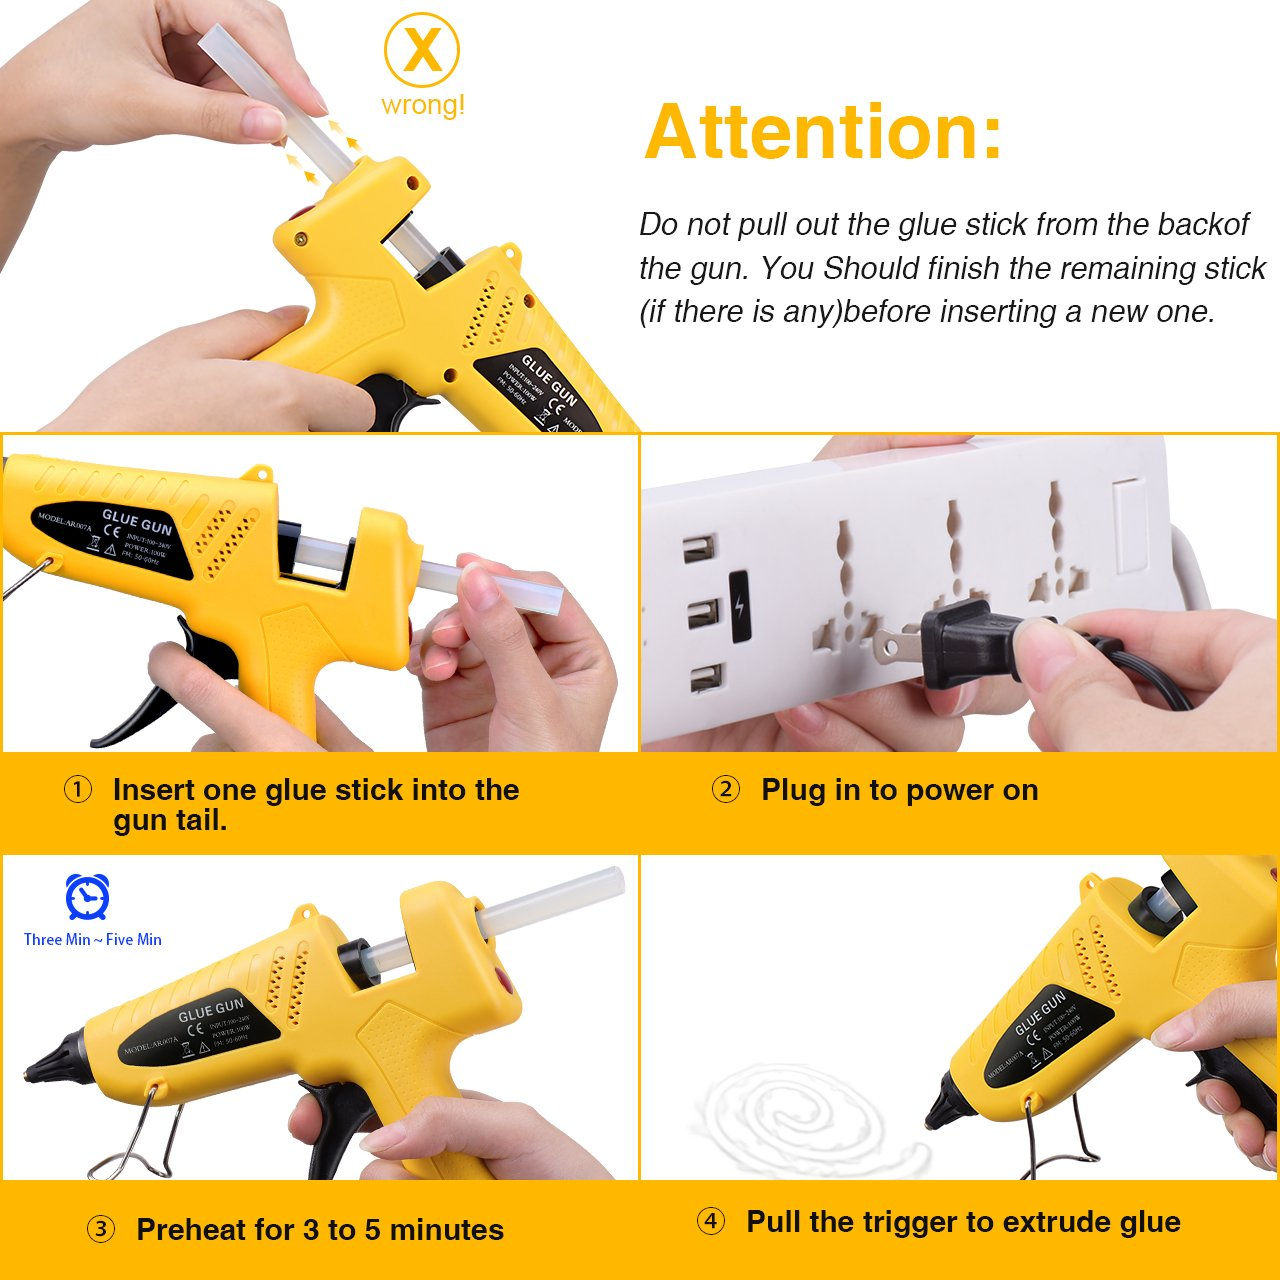 Hot Glue Gun Kits, TopElek 100 Watts Industrial Hot Melt Glue Gun Set, with 12pcs Glue Sticks, for Factory, Home and School, DIY Arts and Crafts Projects, Home Quick Patch-ups